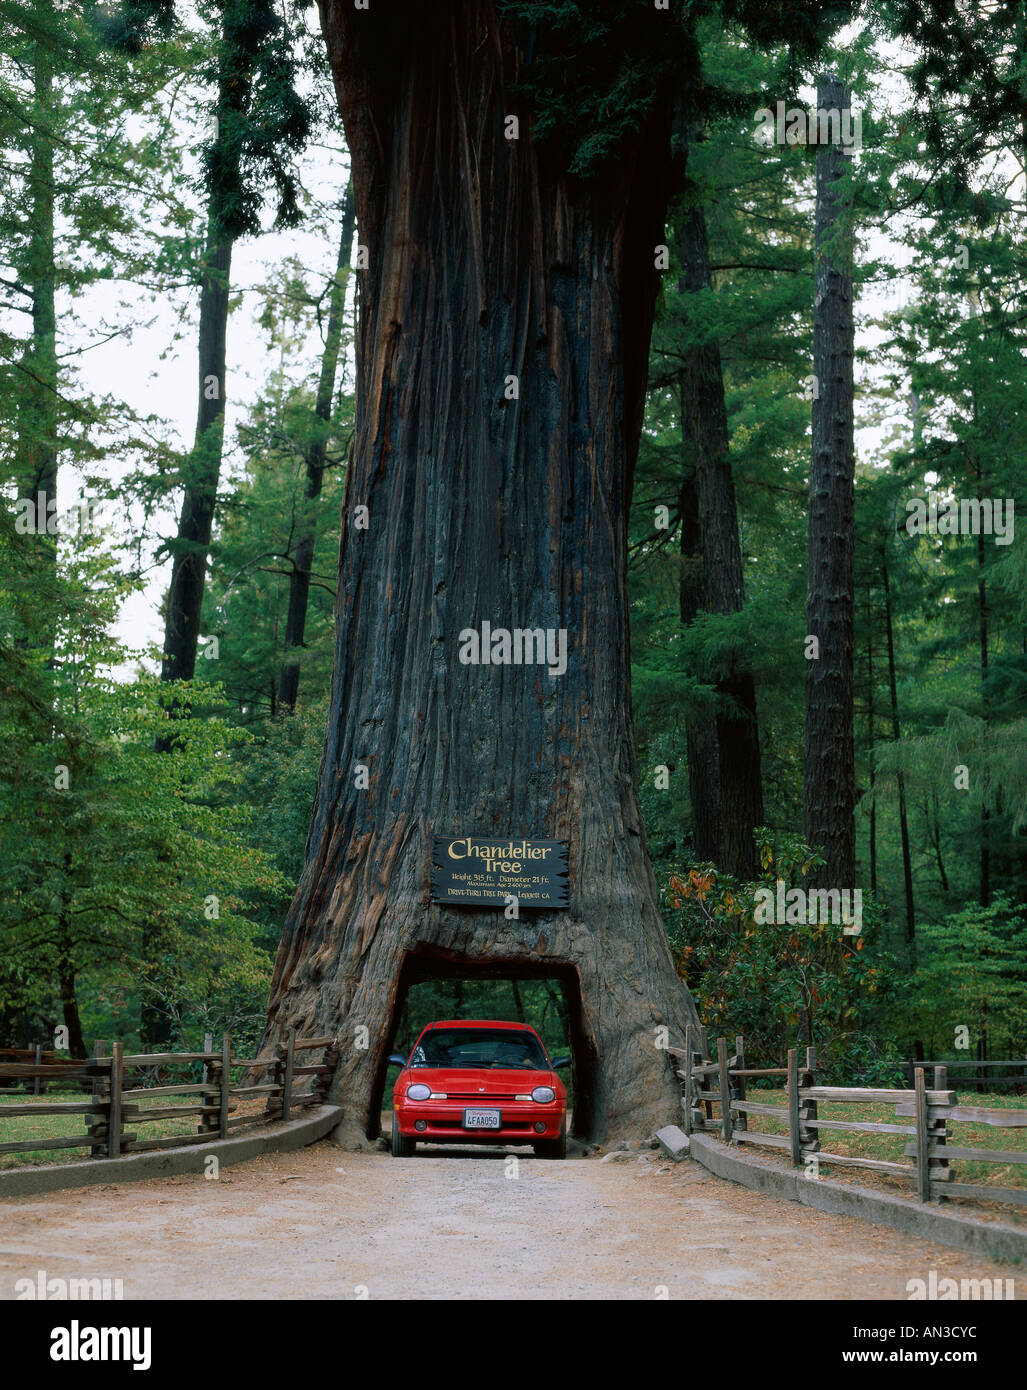 Drive Thru Tree / Chandelier Redwood Tree / Car Driving Through ...